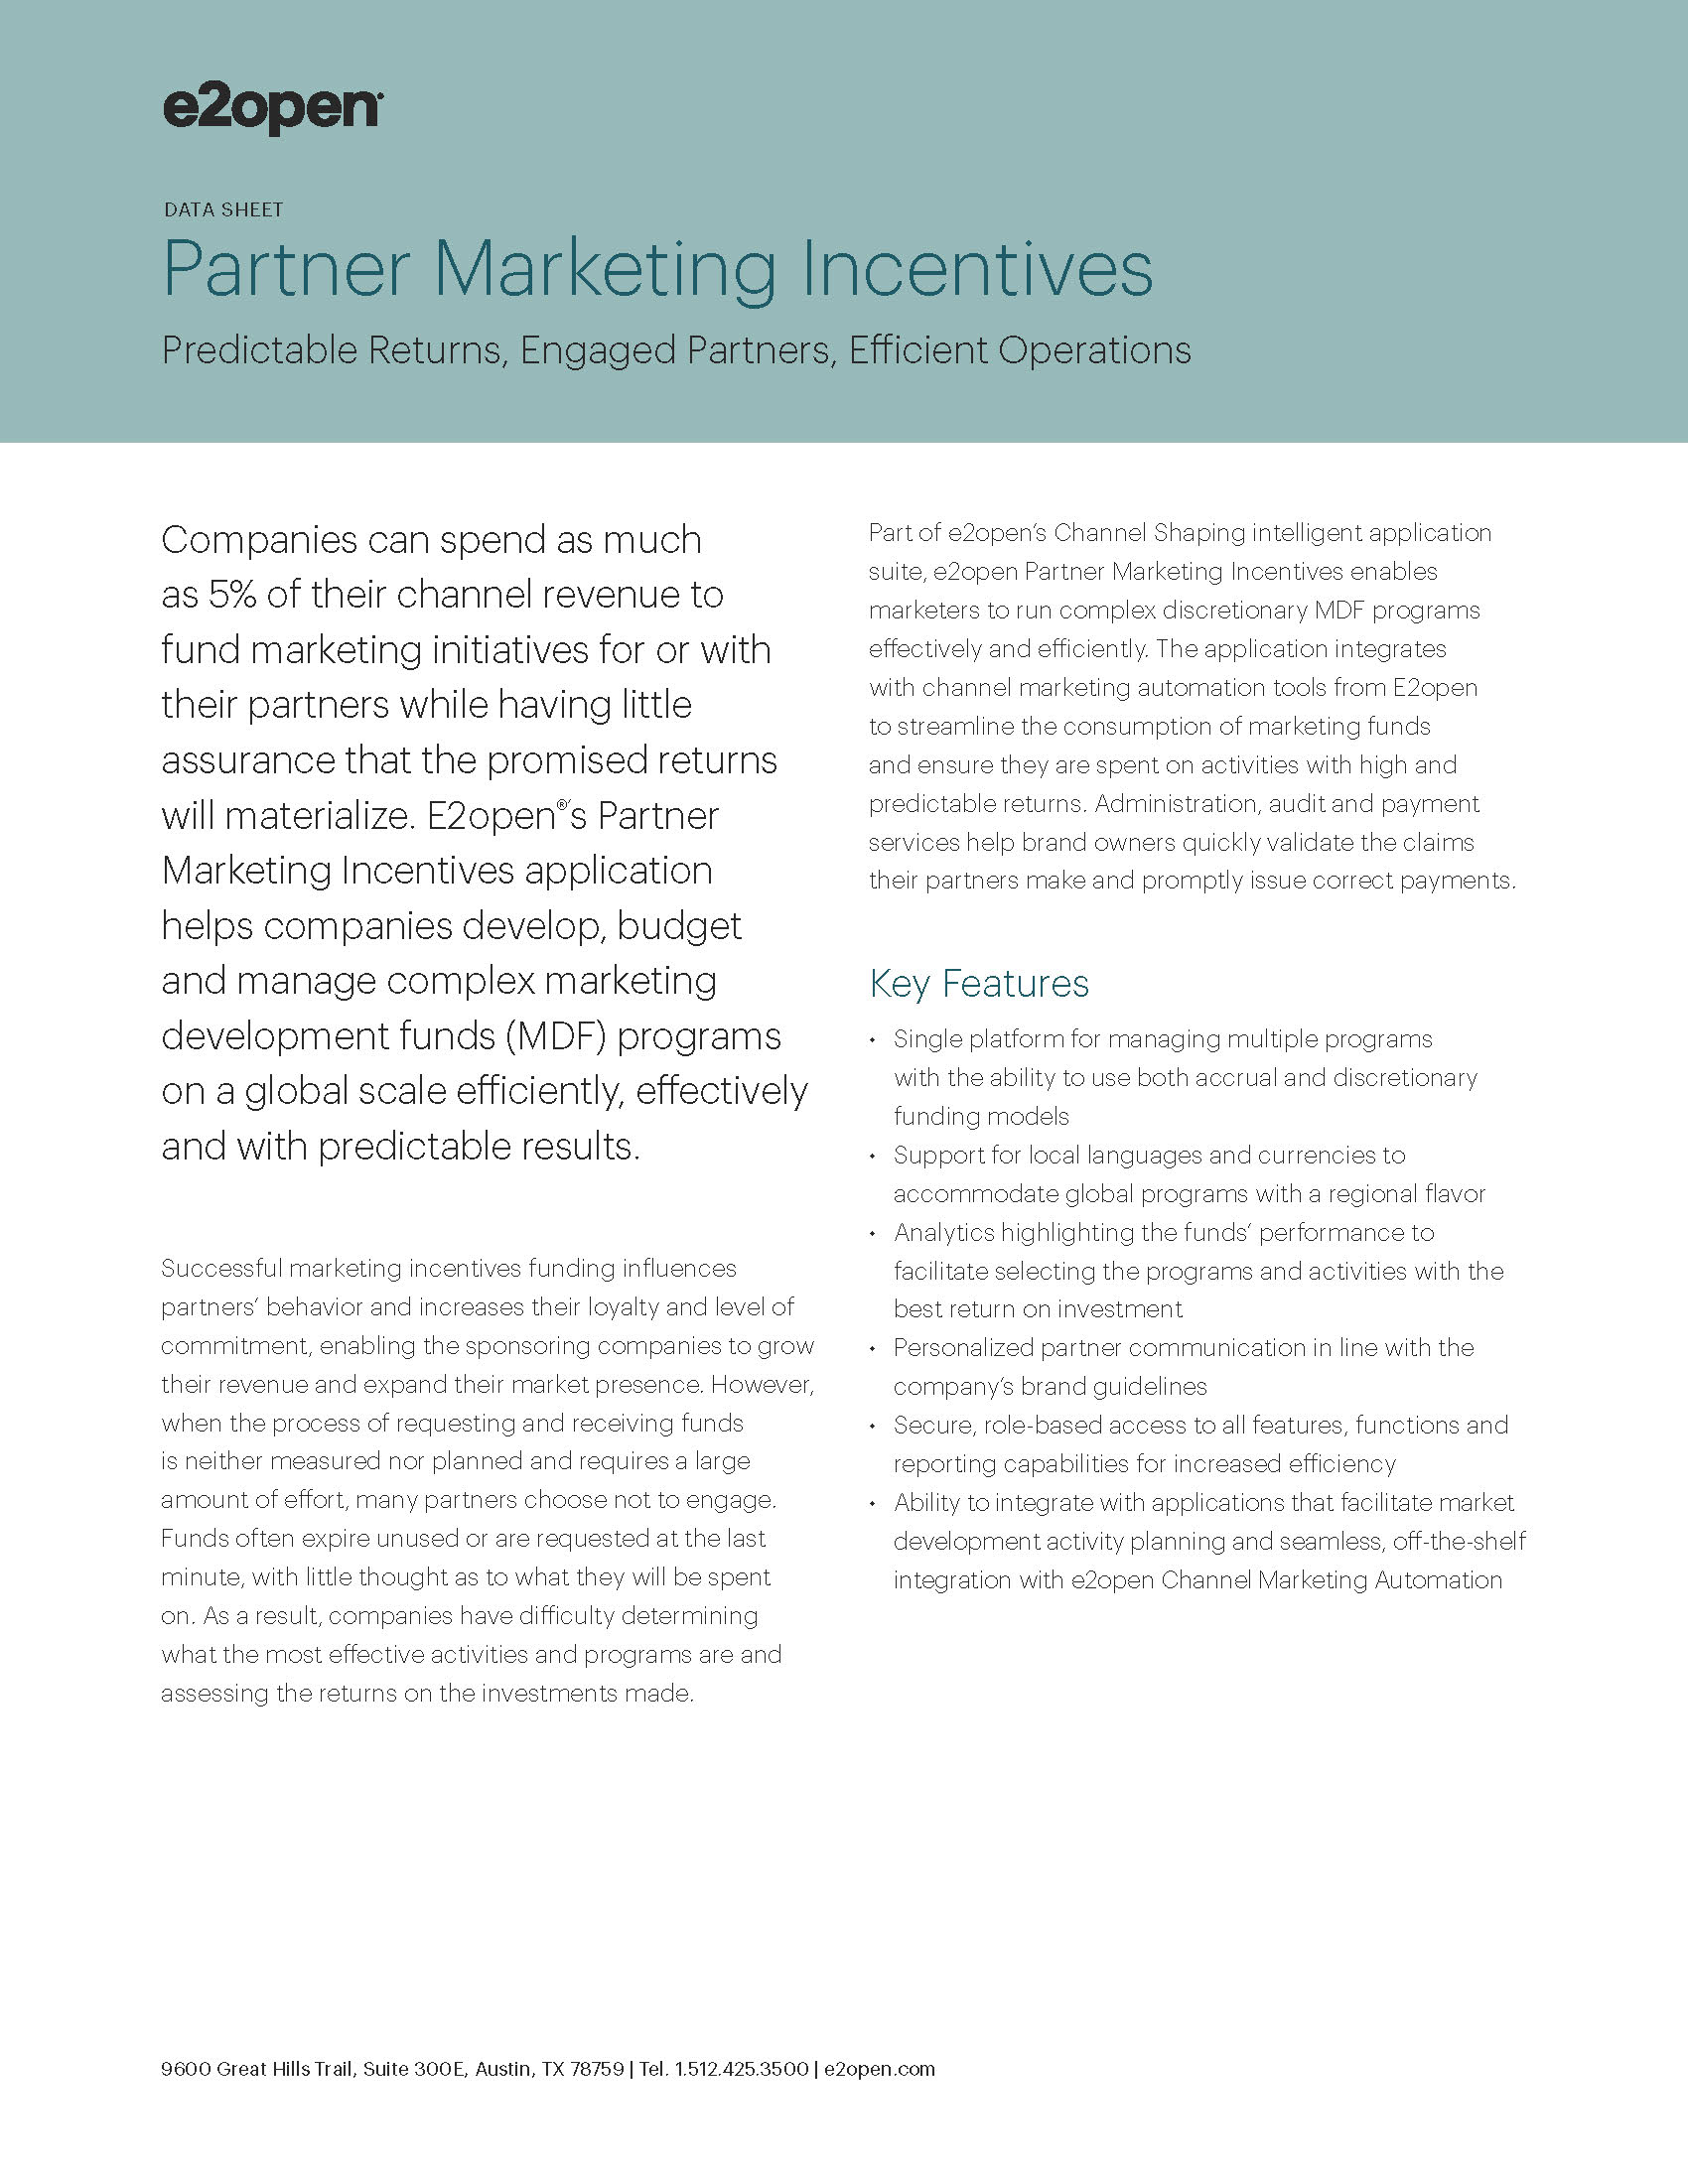 E2open Partner Marketing Incentives Data Sheet